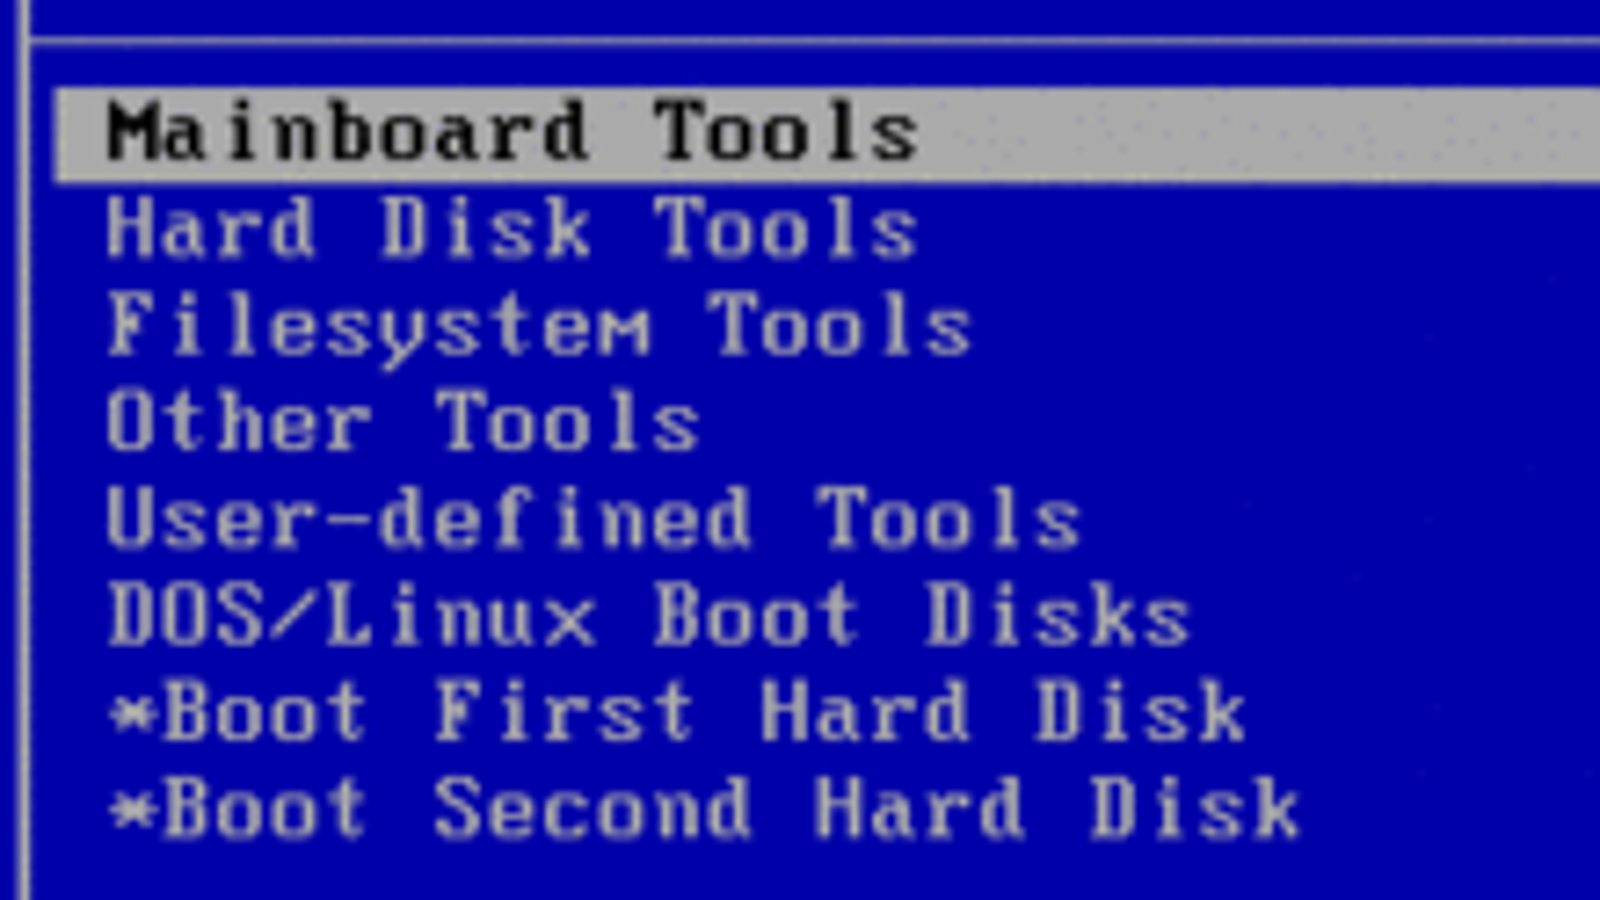 Run the Ultimate Boot CD from Your Thumb Drive